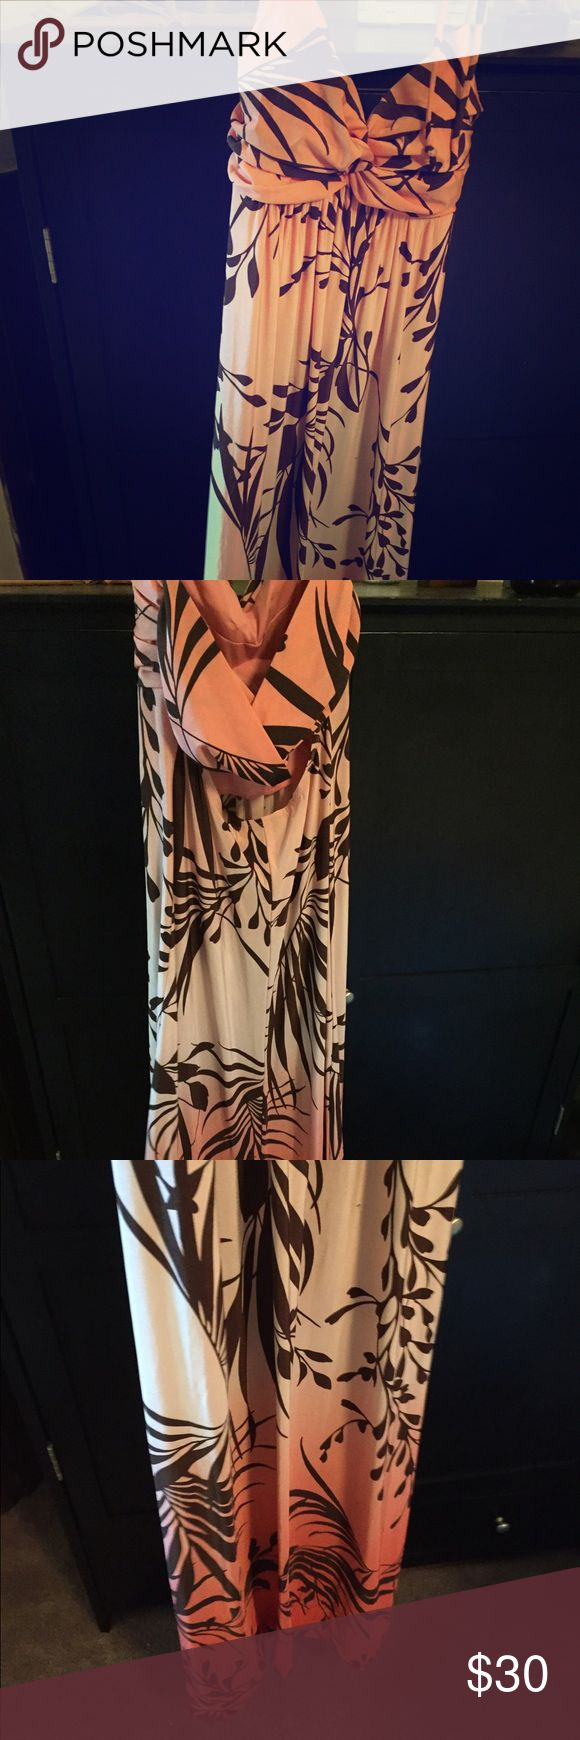 Long Hawaiian Themed Maxi Dress Pink and coral maxi dress with small back cut out and neck tie. Super long and flows nicely, perfect cruise wear 🌸 says 9/10 size but I'm a small and it fits me Dresses Maxi